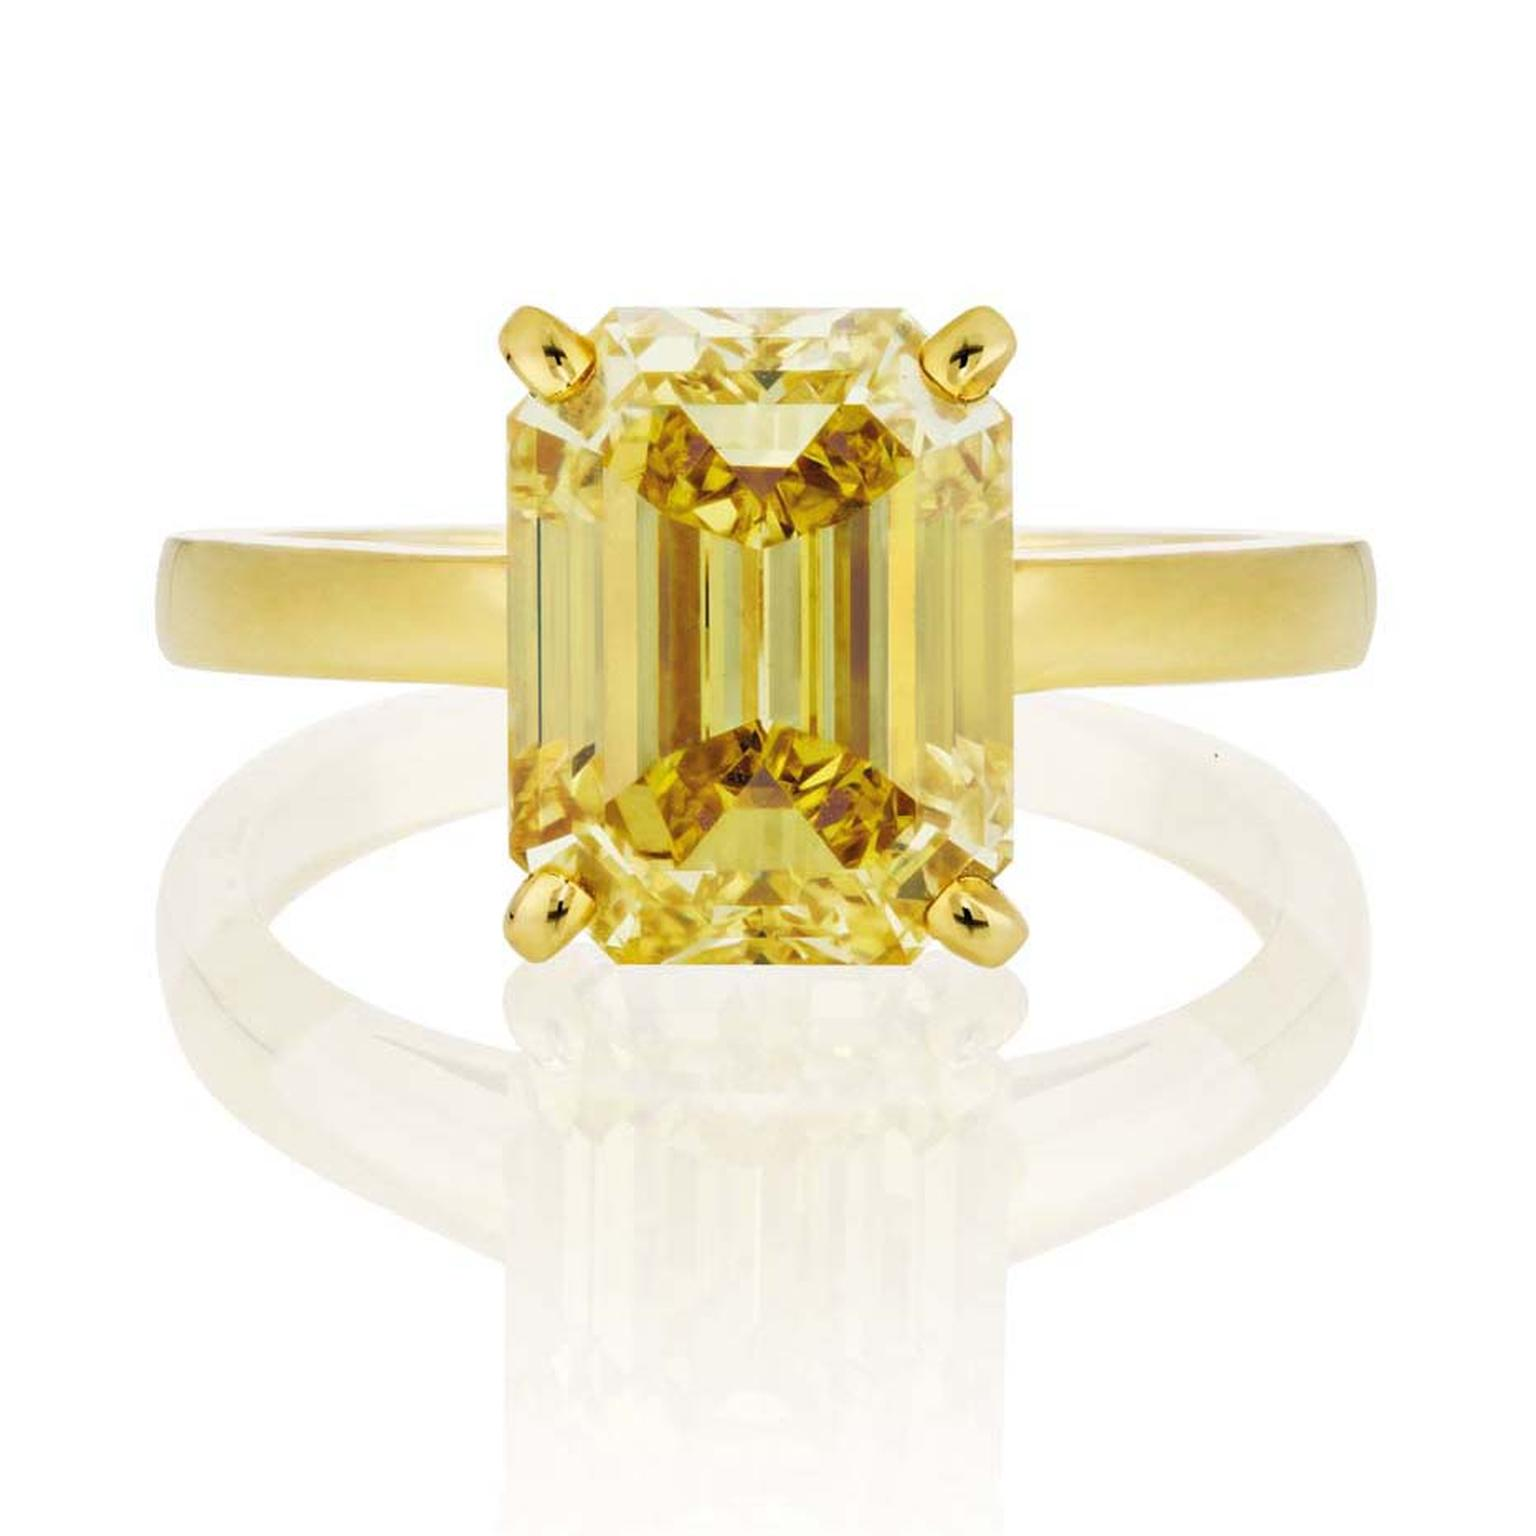 De Beers 4.03ct emerald-cut Fancy Vivid yellow diamond engagement ring, set in yellow gold.